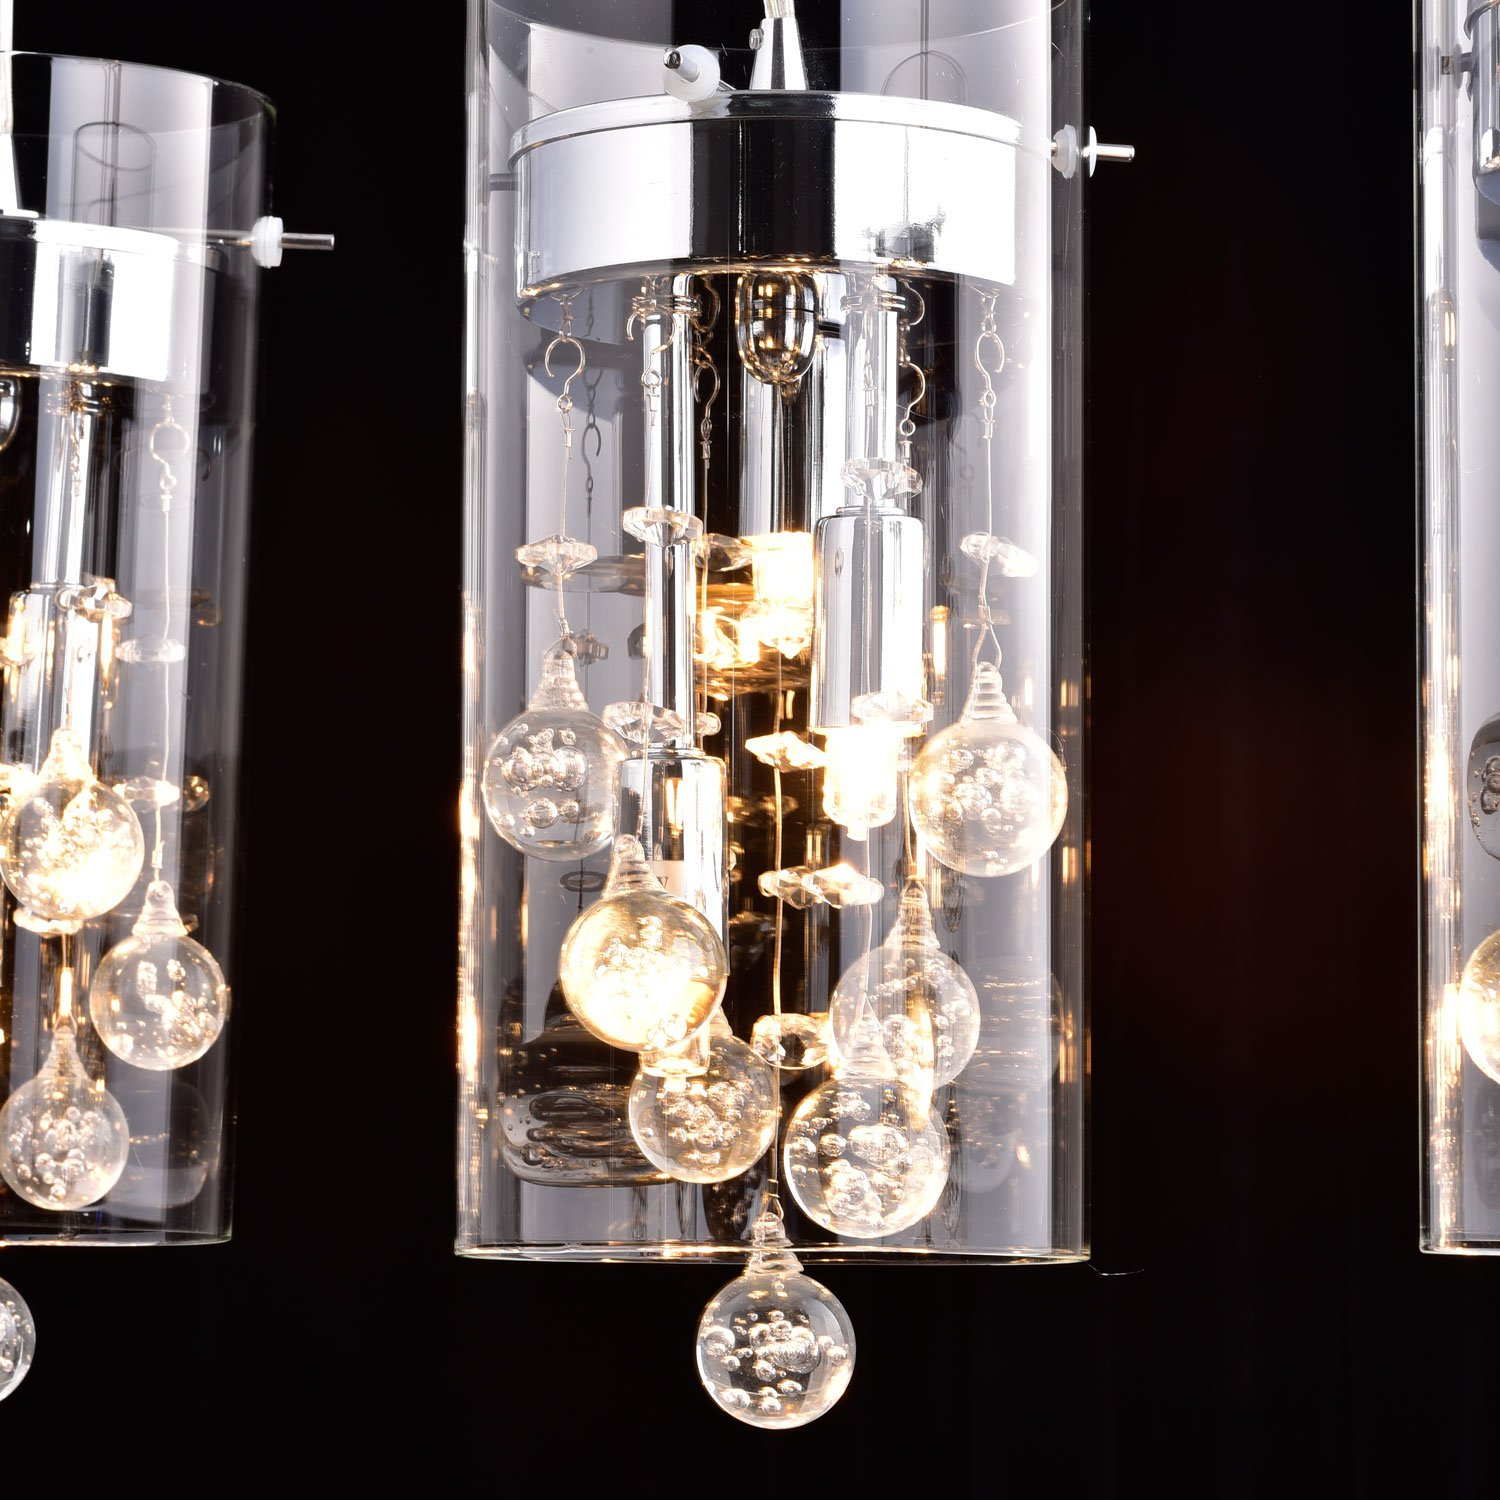 Chandelier Lighting Glass: CLAXY Ecopower Lighting Glass Crystal Pendant Lighting